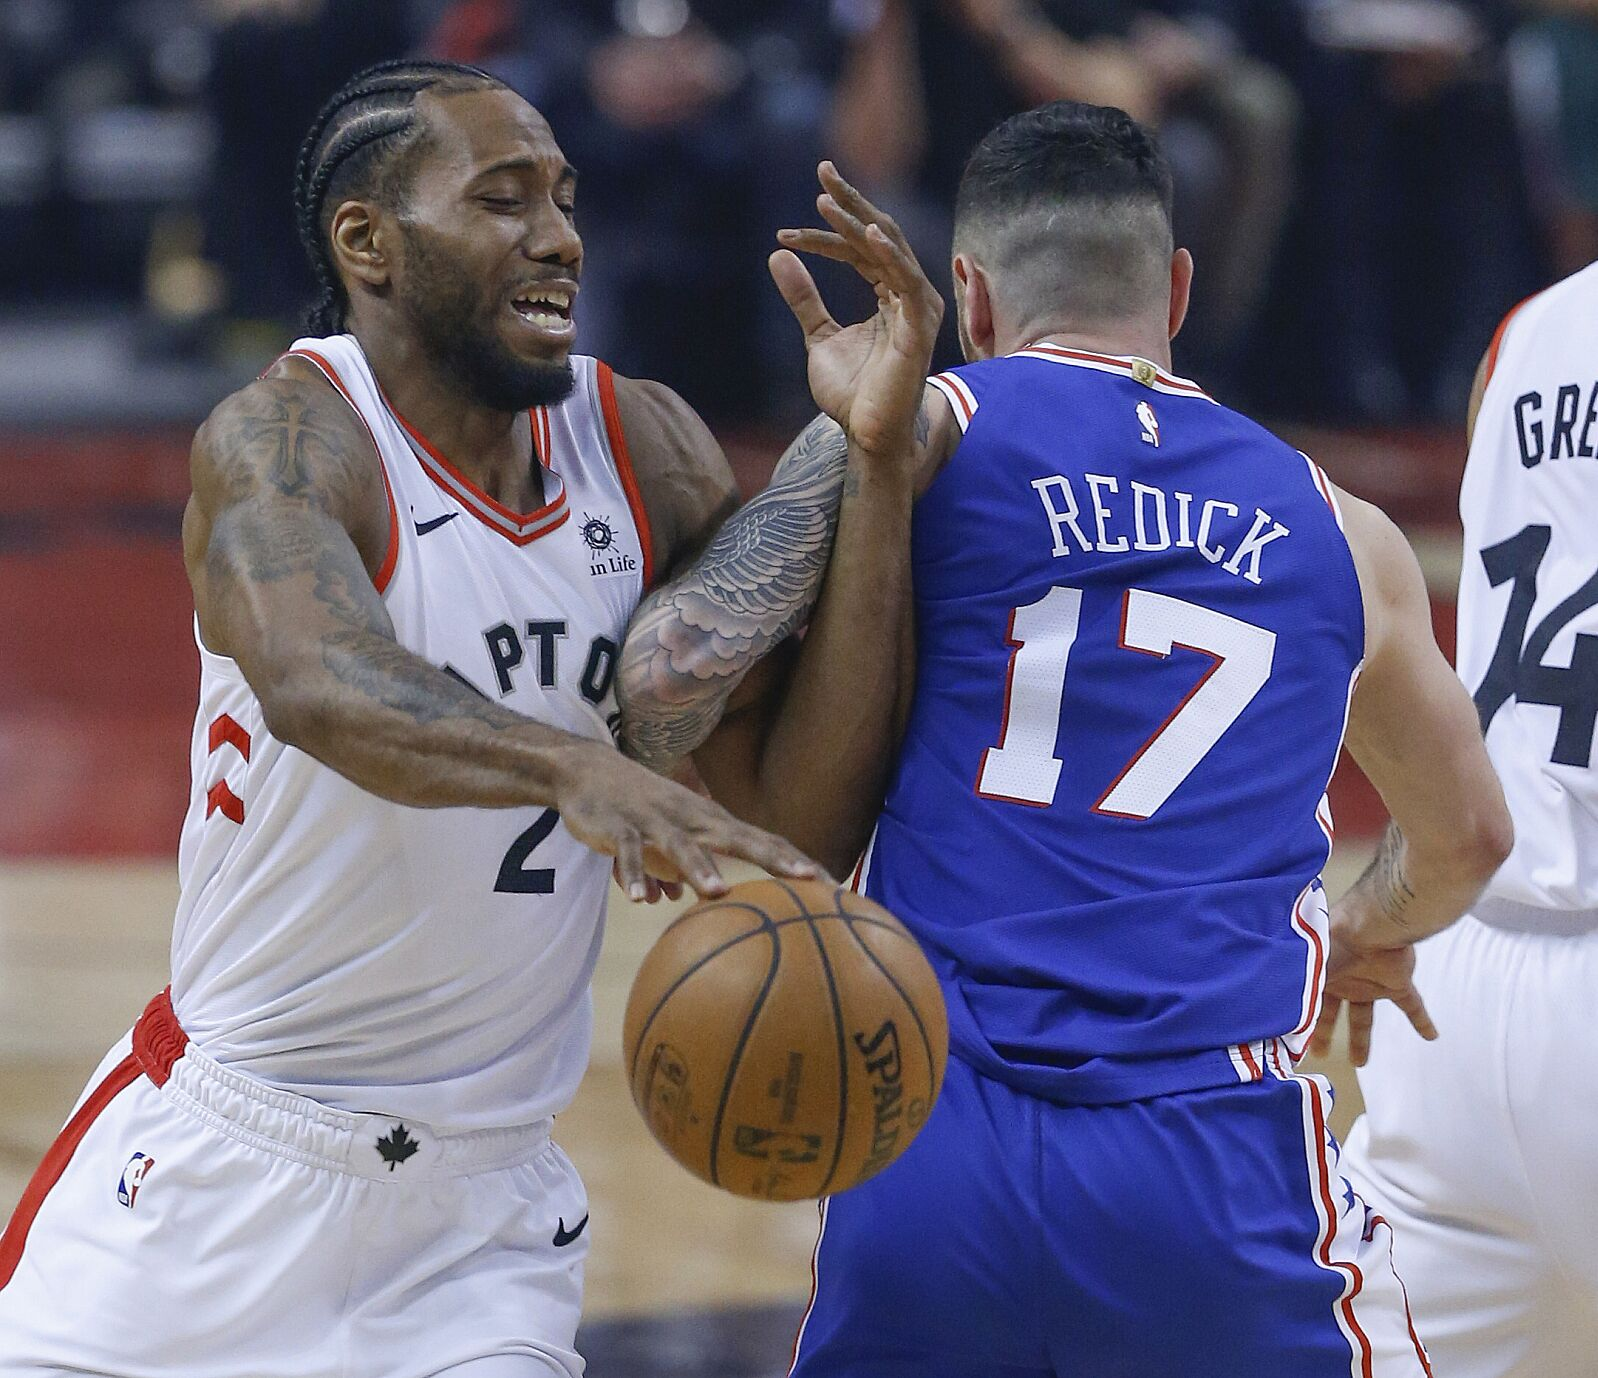 Flipboard Sports Highlights News Now: Flipboard: 76ers, Raptors Meet With Series Tied 1-1